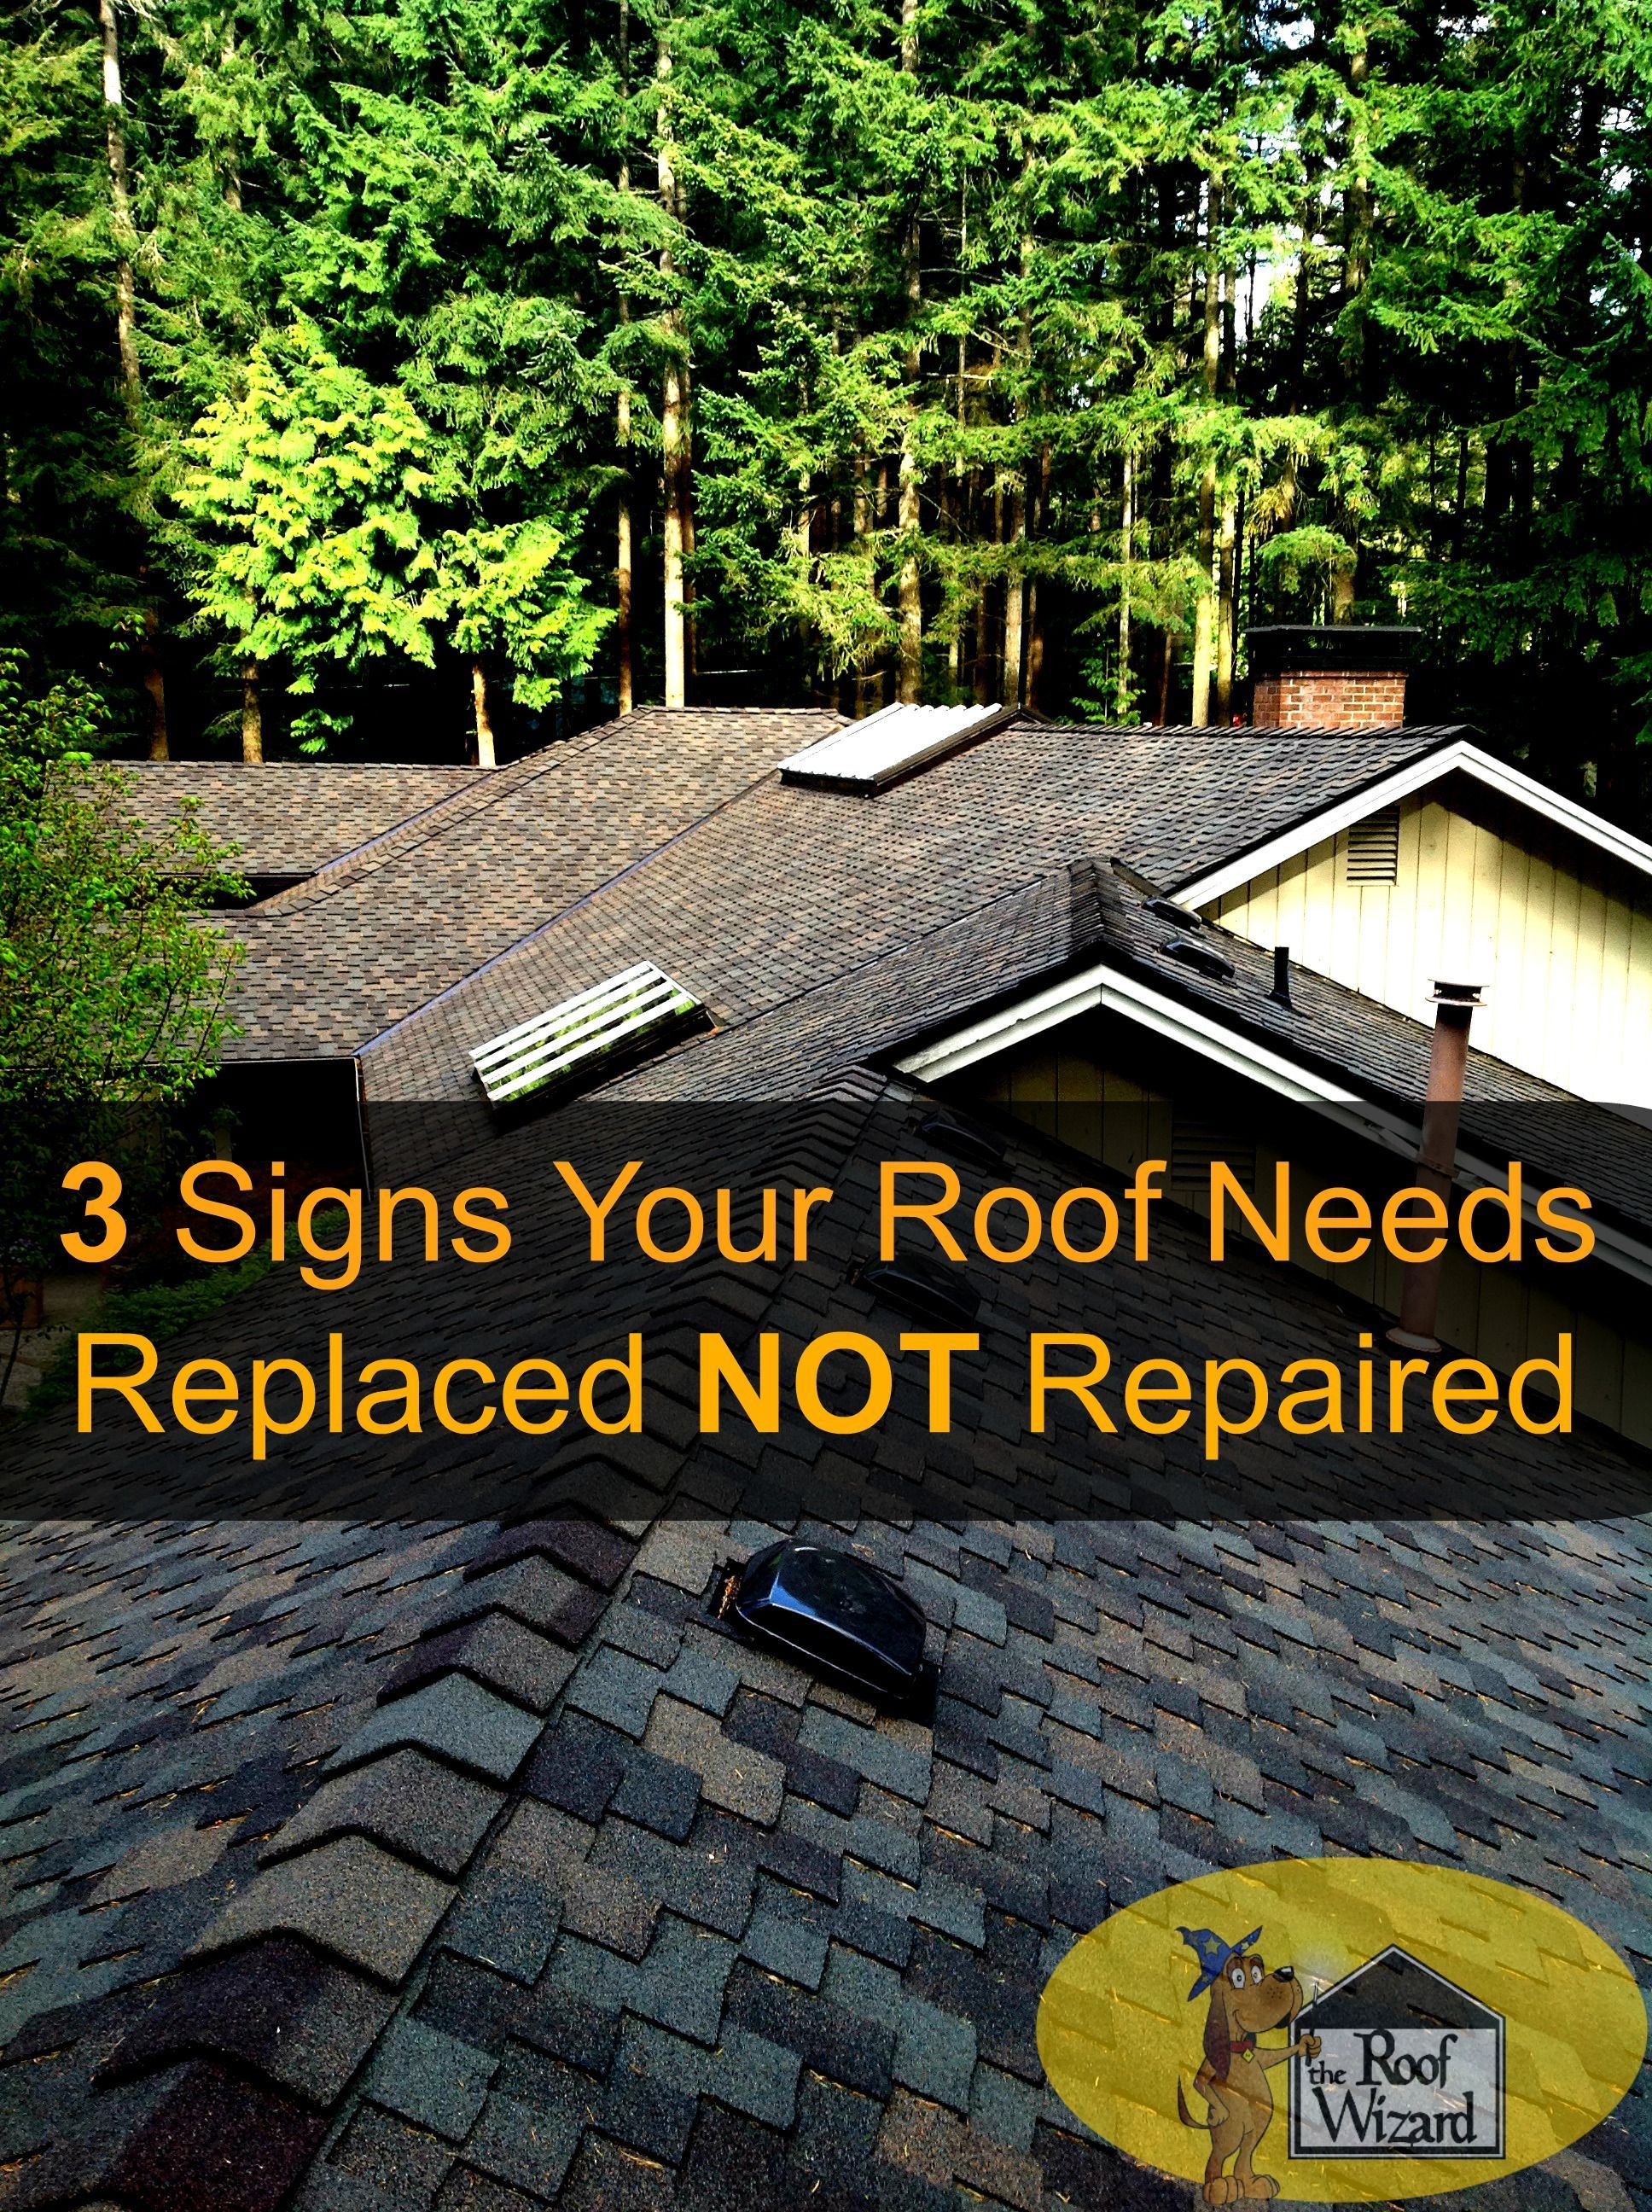 Signs Your Roof Needs To Be Replaced 2 Your Shingles Are Cracked Or Missing Shingling Castle Window Roof